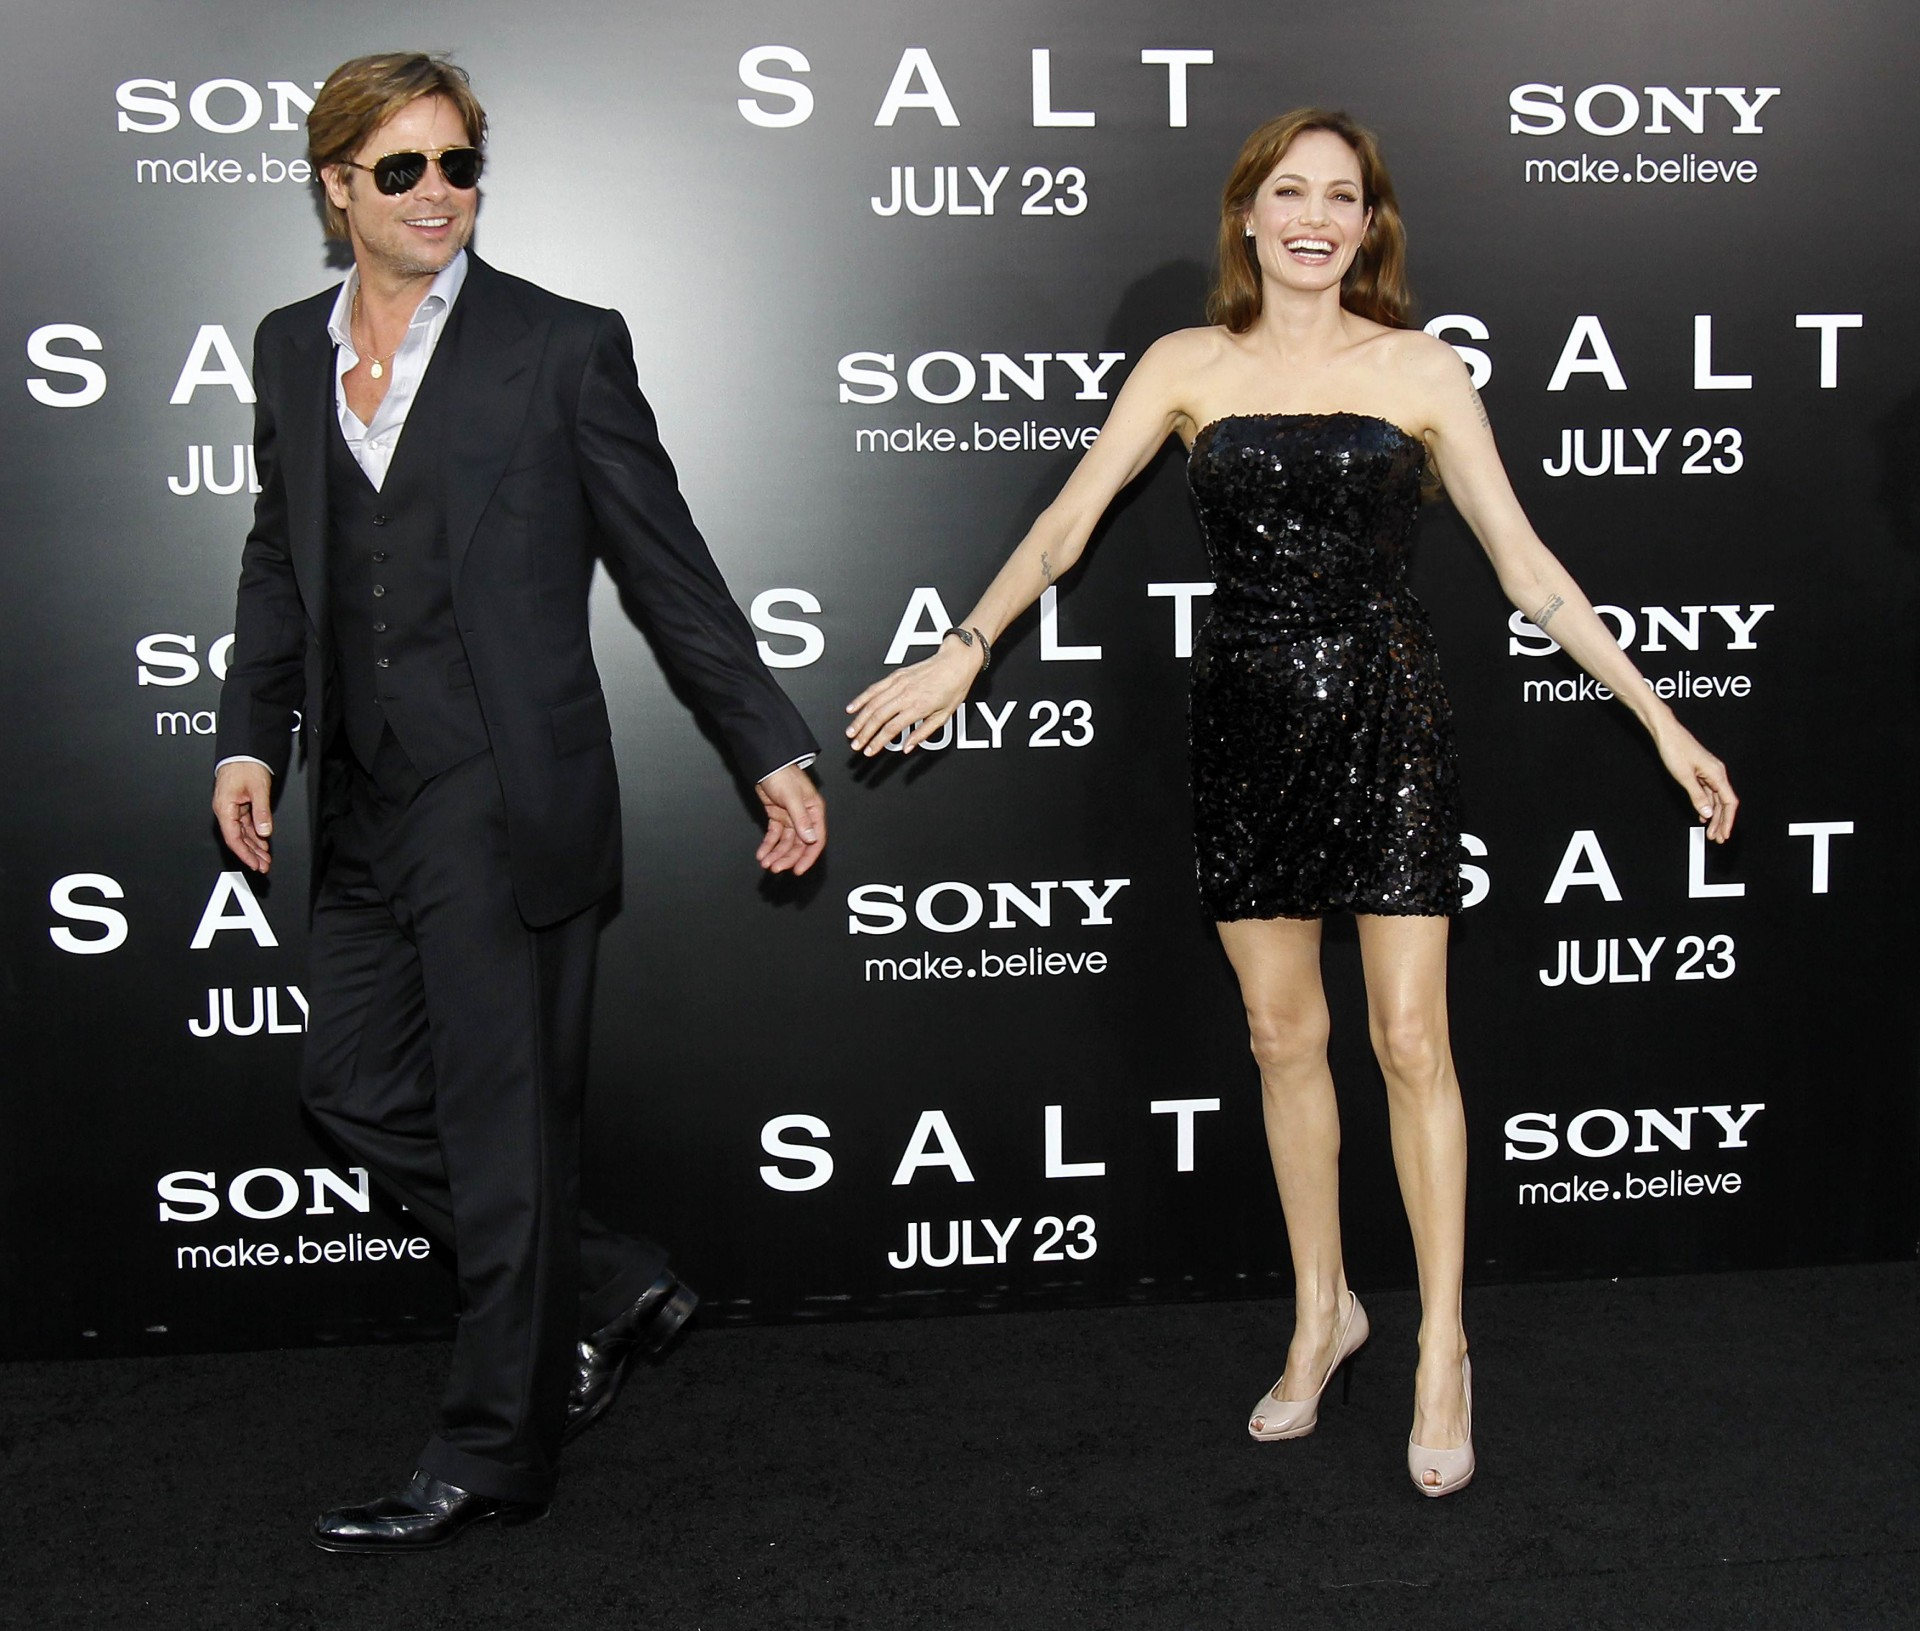 "Cast member Angelina Jolie and actor Brad Pitt smile at the premiere of the movie ""Salt"" at the Grauman's Chinese theatre in Hollywood, California July 19, 2010. The movie opens in the U.S. on July 23. REUTERS/Mario Anzuoni (UNITED STATES - Tags: ENTERTAINMENT)"